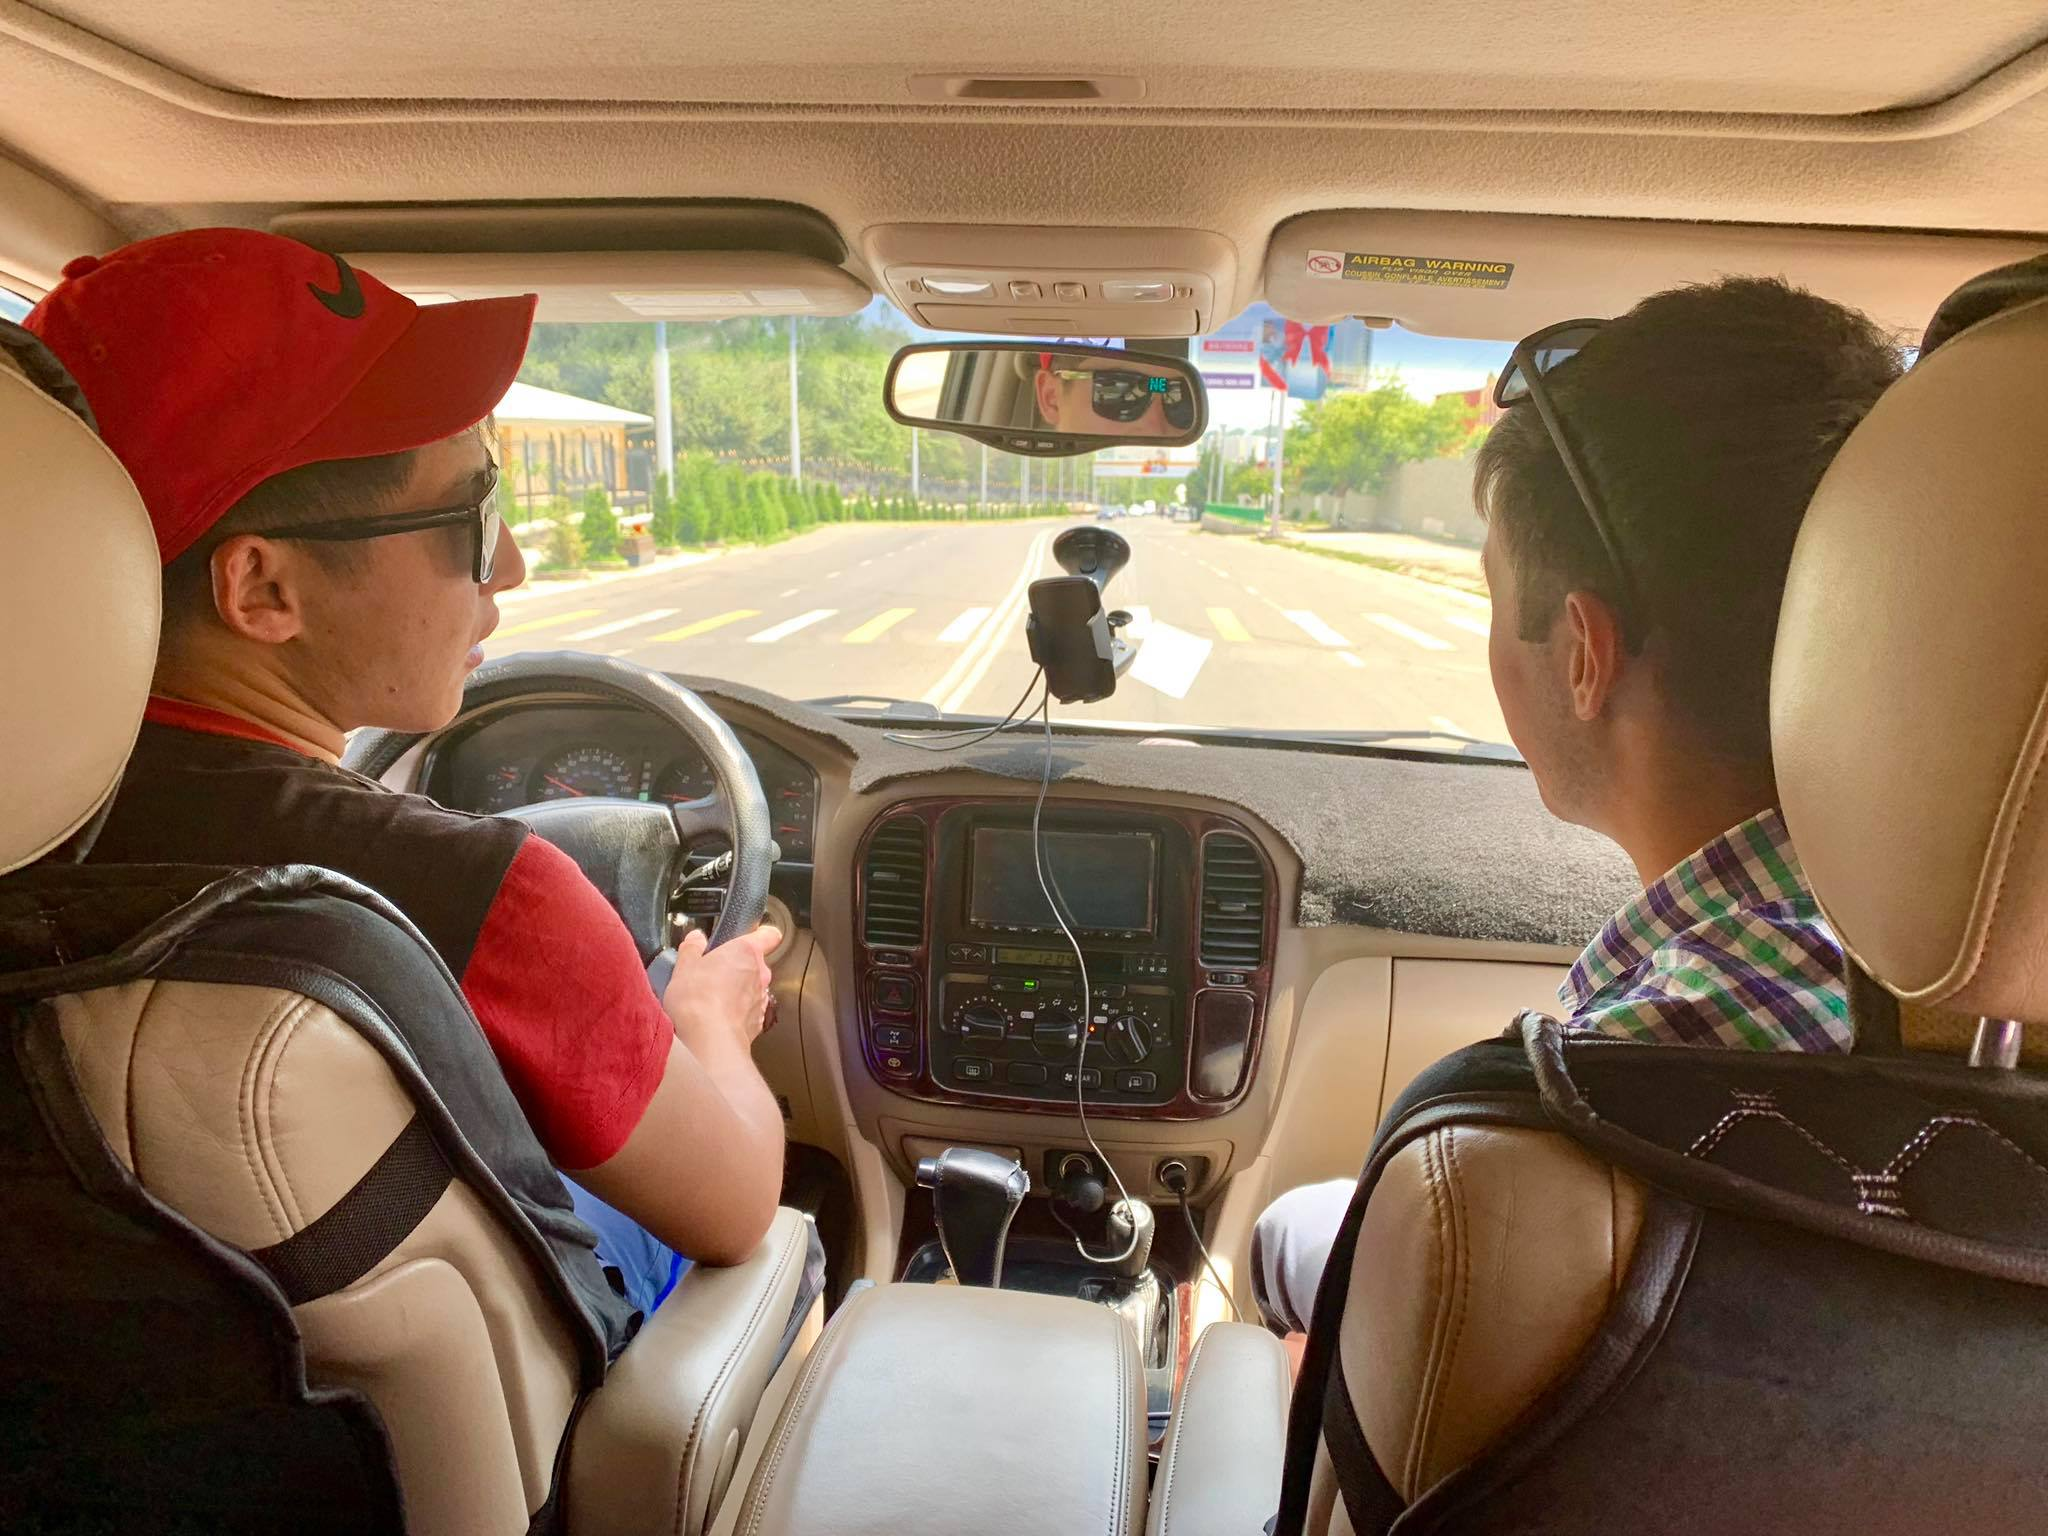 Kach Solo Travels in 2019 Exploring KYRGYZSTAN with Destination Pamir17.jpg